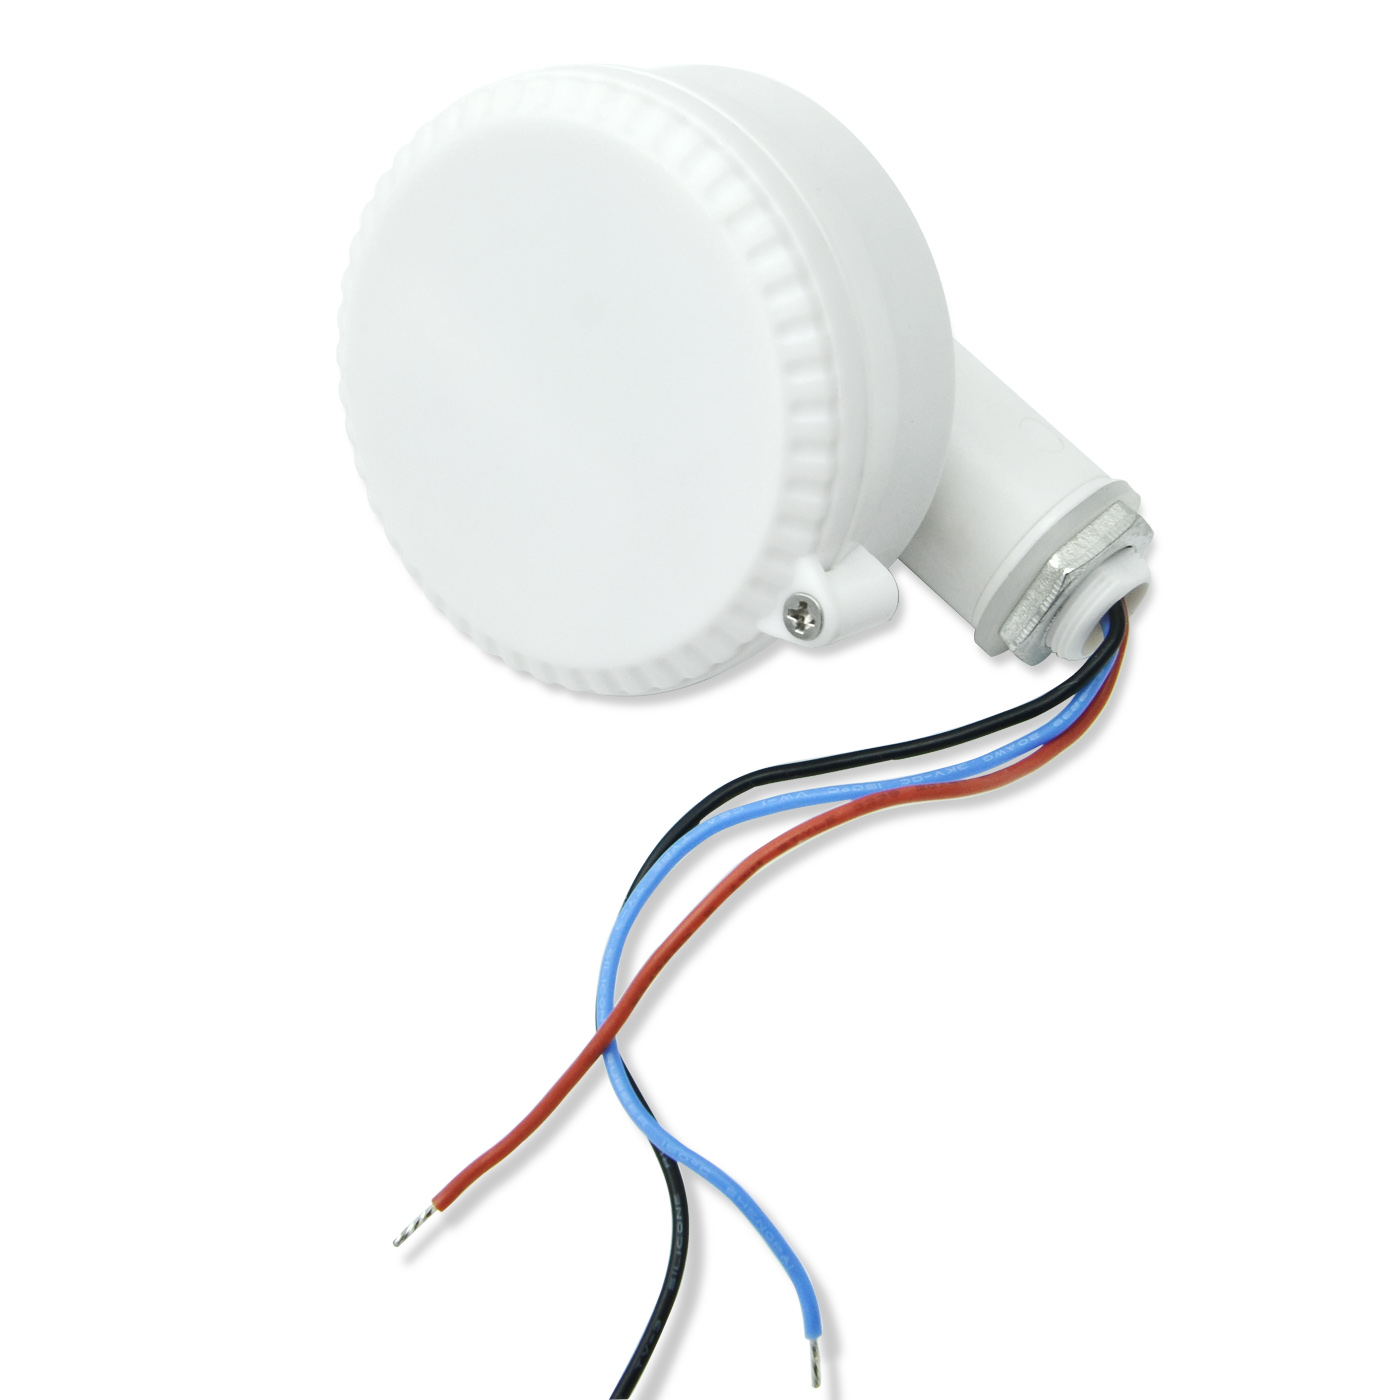 [out of stock]220-240VAC IP65 Microwave Sensor  For Flood Light